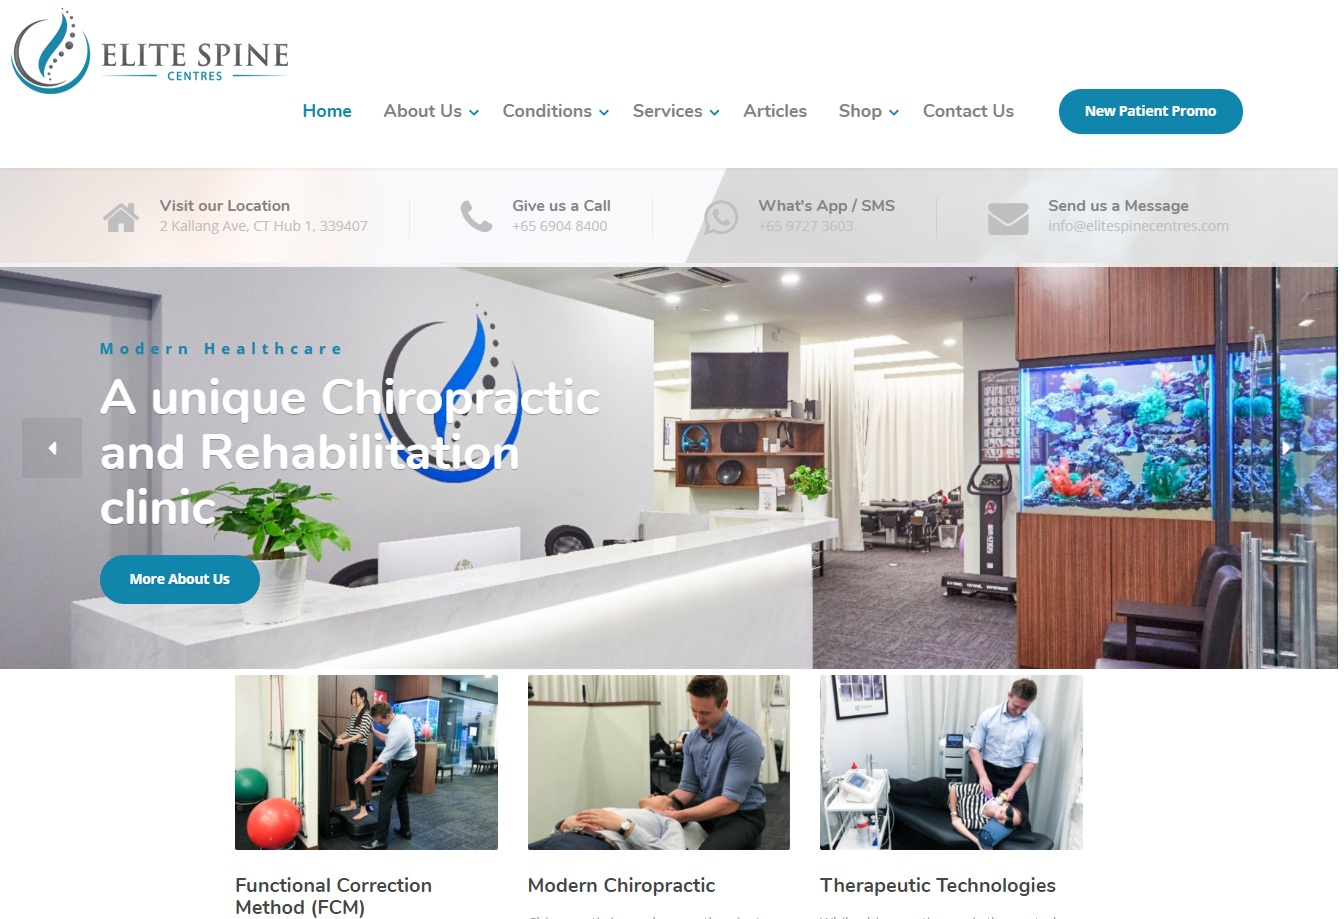 Elite Spine Centres' Homepage